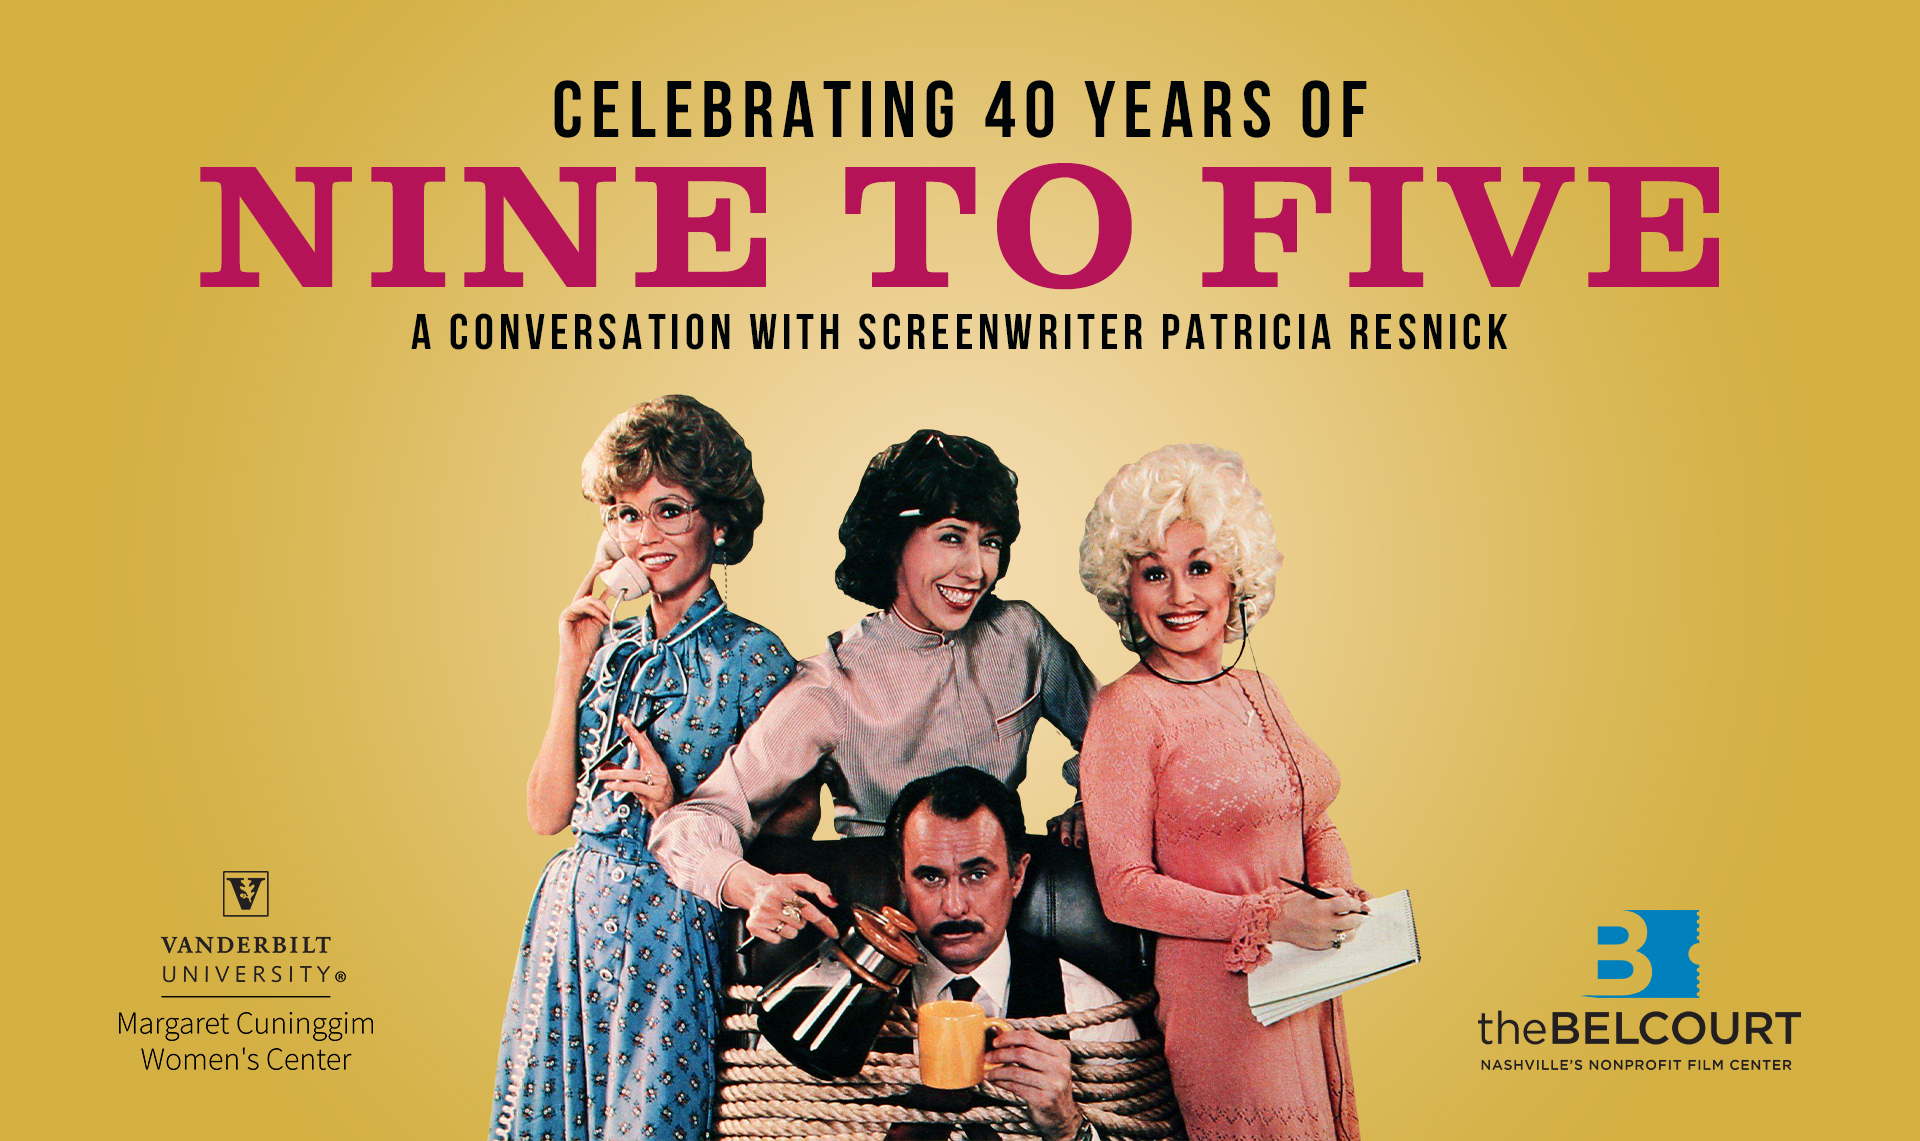 Celebrating 40 Years of NINE TO FIVE: A Conversation with Screenwriter Patricia Resnick